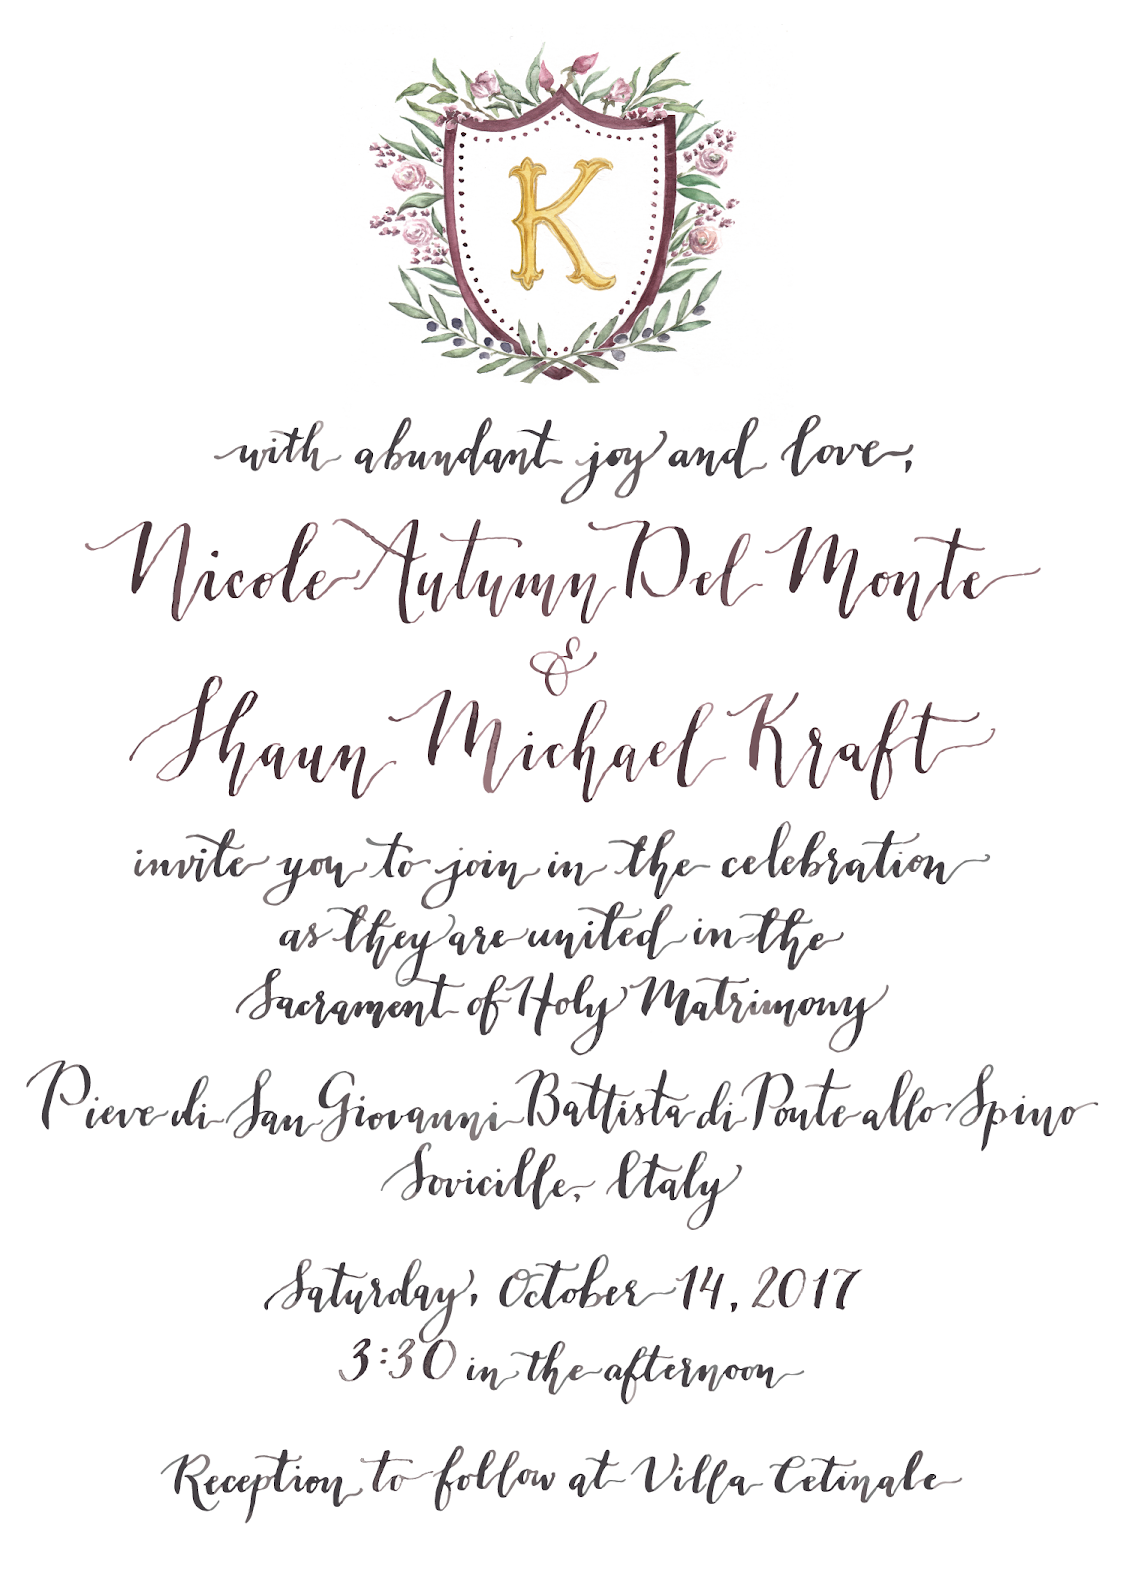 Nicole and Shaun Invitation FINAL-01.png